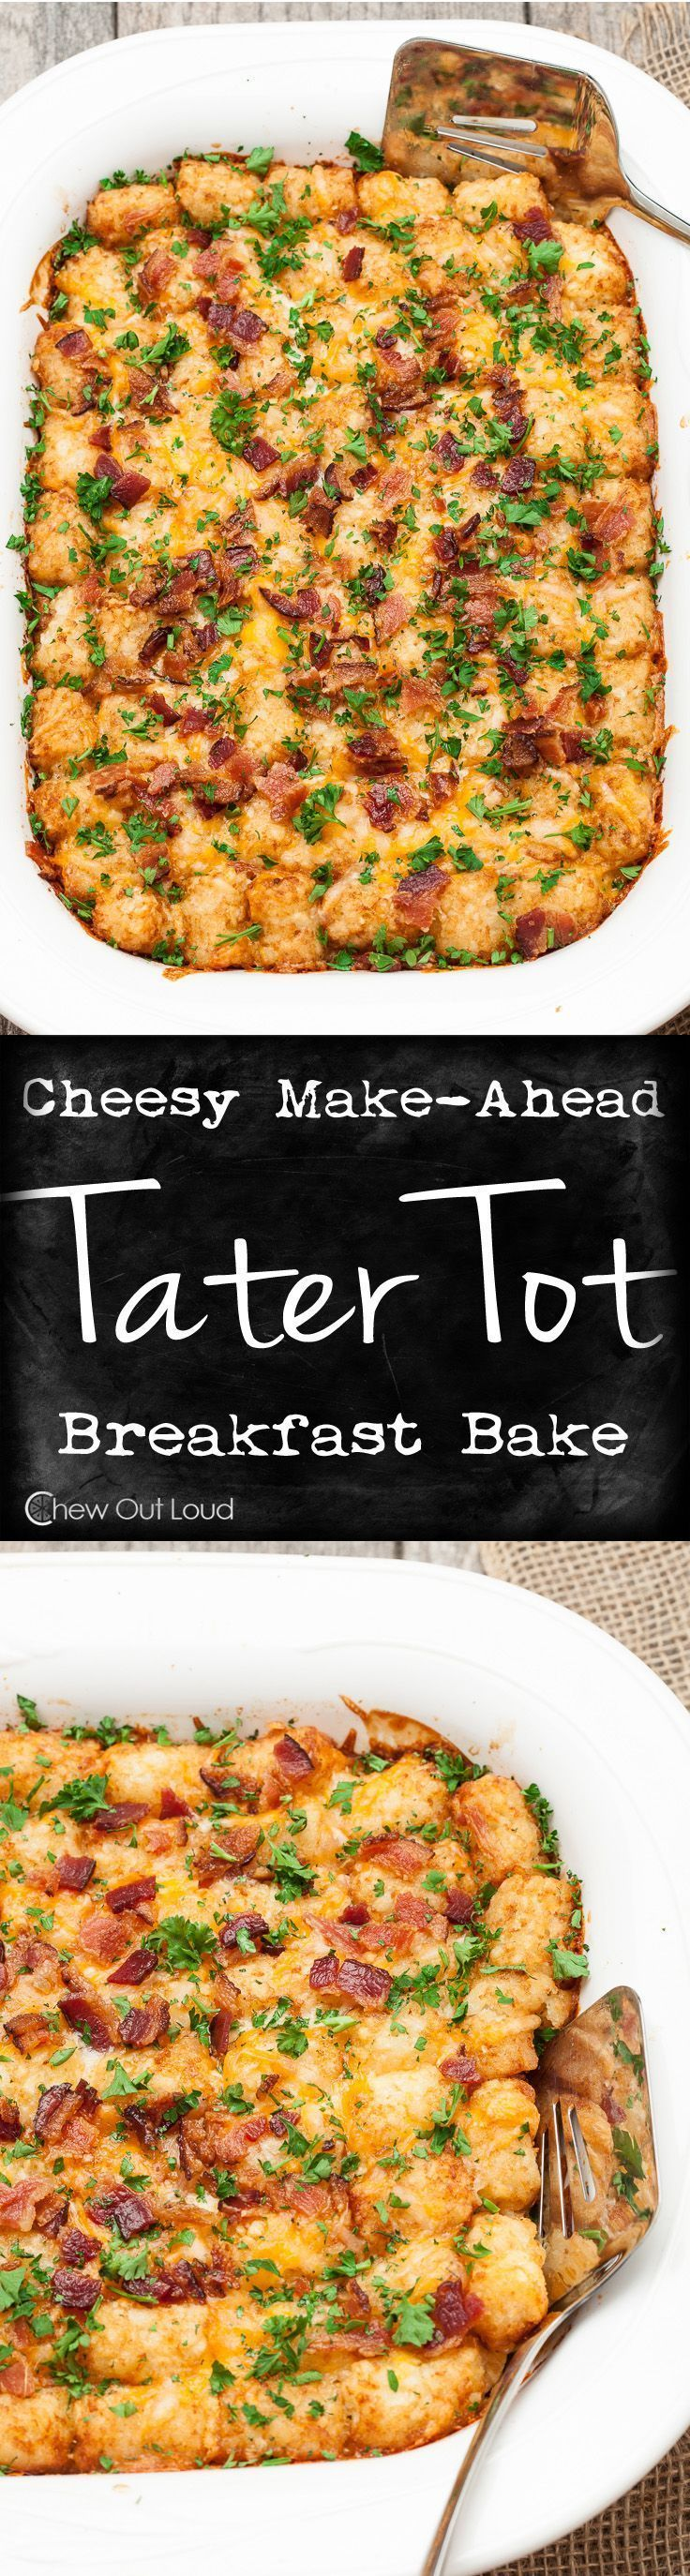 Easy breakfast recipes for a crowd make ahead